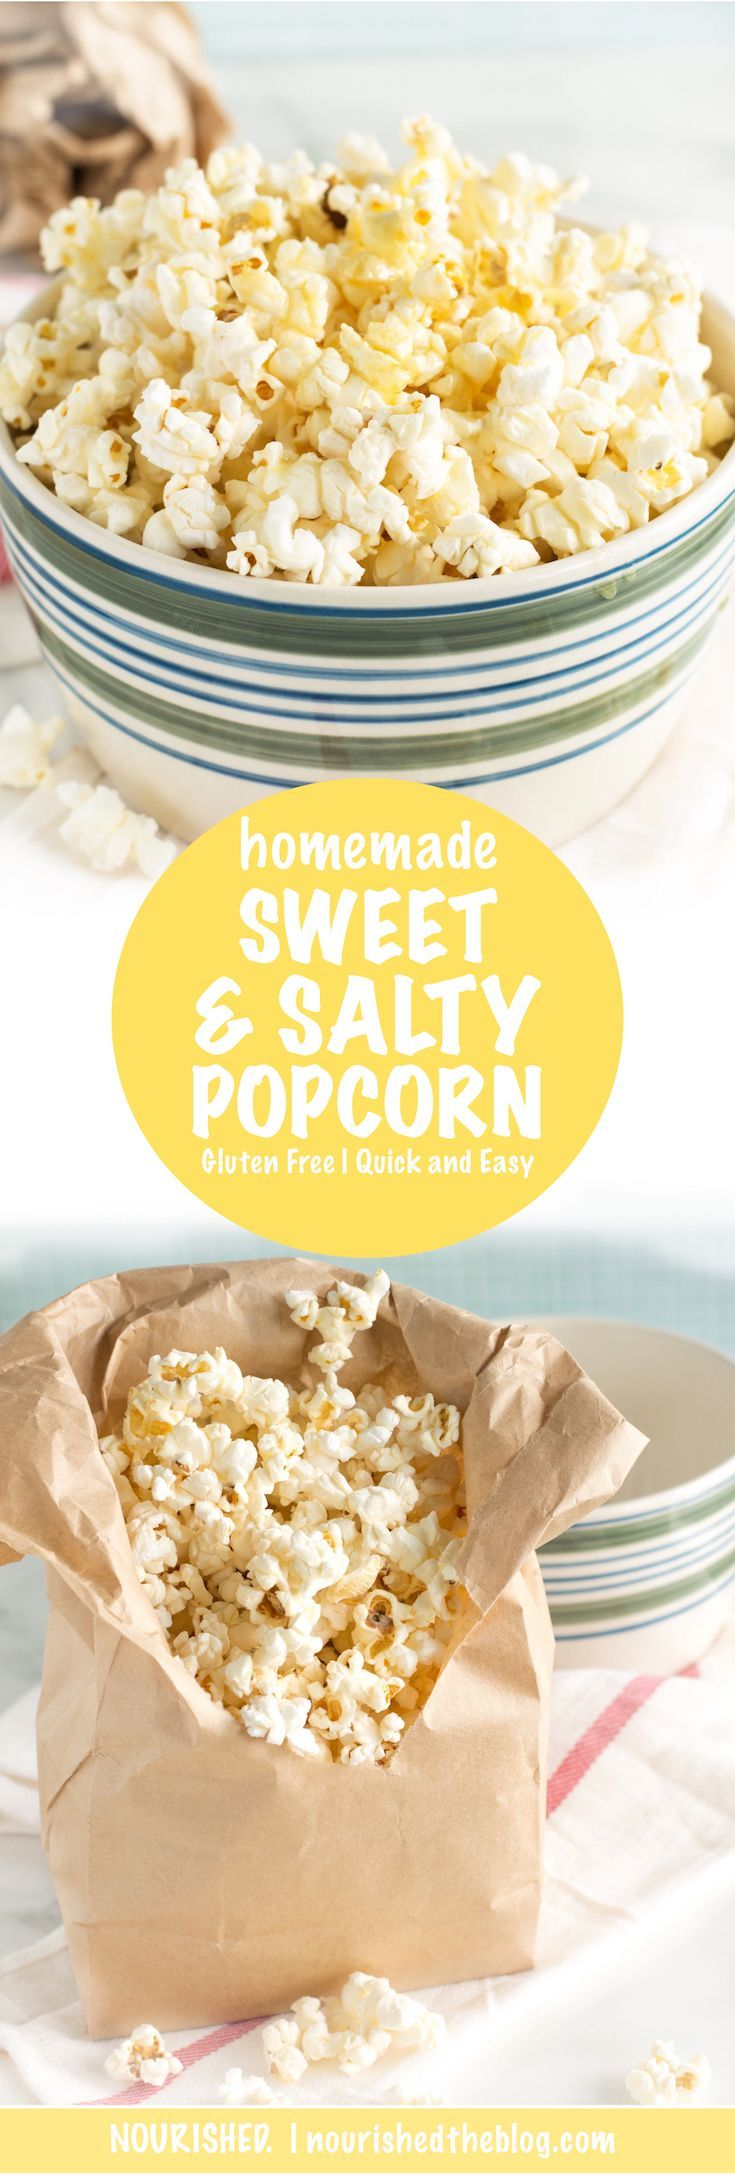 Freshly popped popcorn drizzled with butter and honey and vanilla and sea salt is the ultimate in sweet and salty. This popcorn snack is super easy to make and gluten free too! Click for this DIY microwave popcorn recipe.